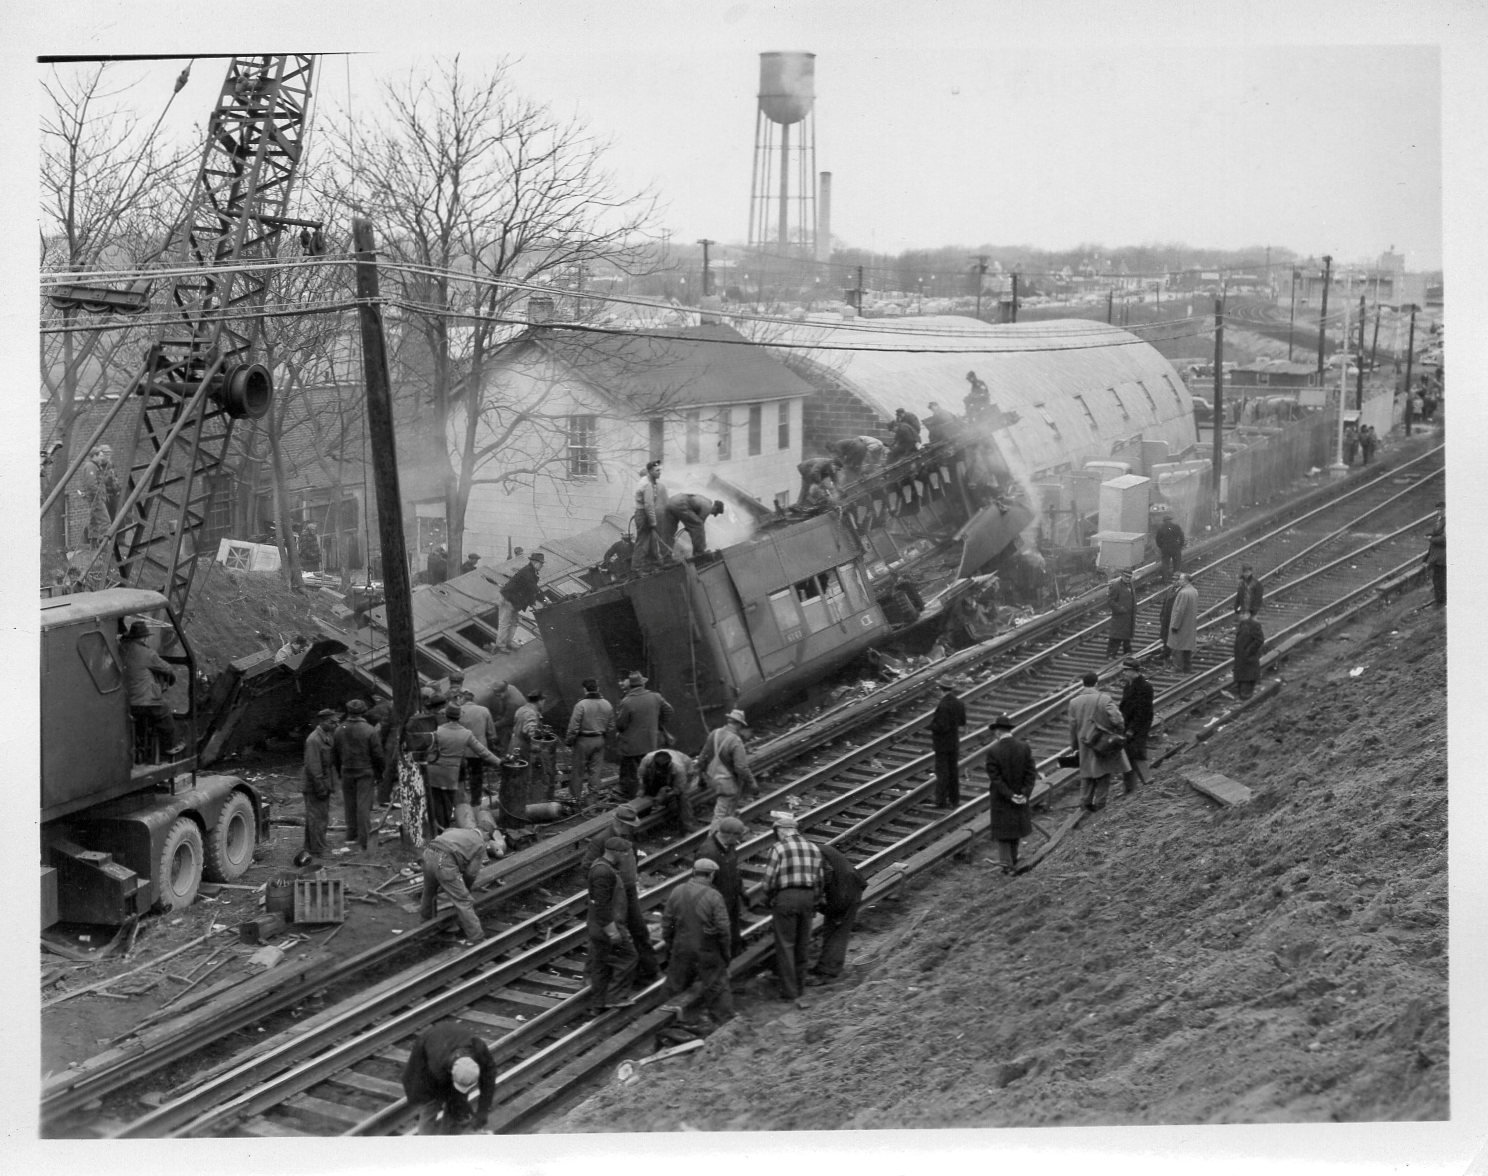 Some 29 people were killed, and more than 100 others were injured, when two Long Island Rail Road trains collided in Rockville Centre at Banks Avenue shortly after 10:30 p.m. on Feb. 17, 1950.